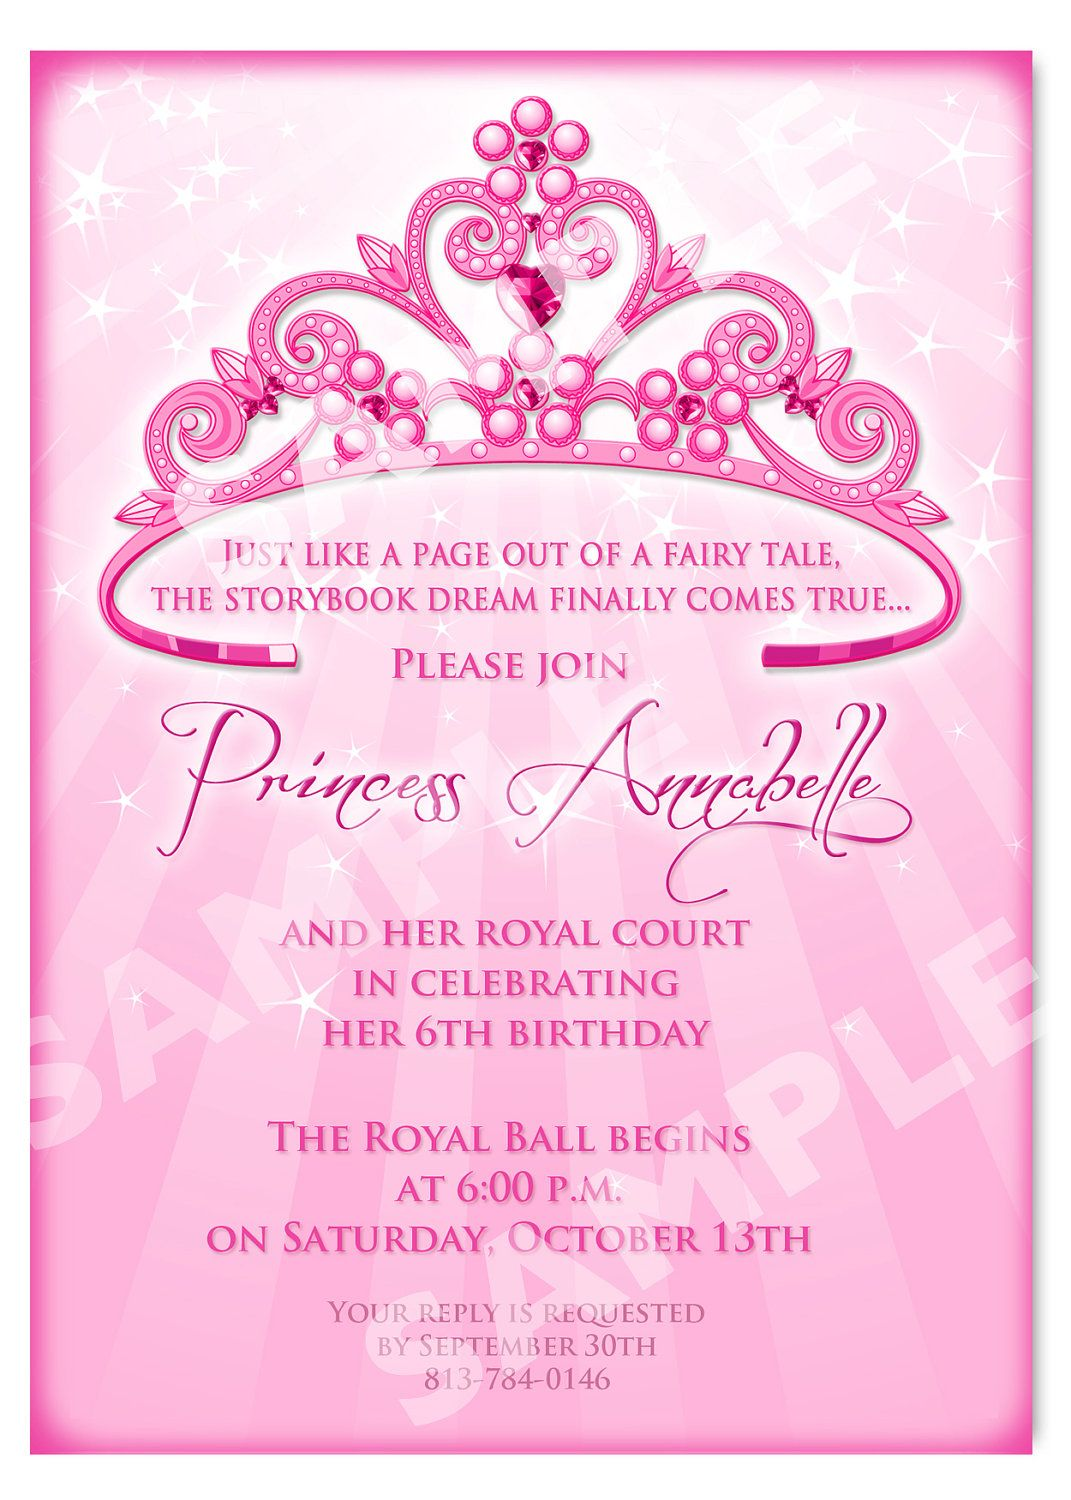 Printable princess invitation cards birthday party ideas printable princess invitation cards filmwisefo Image collections